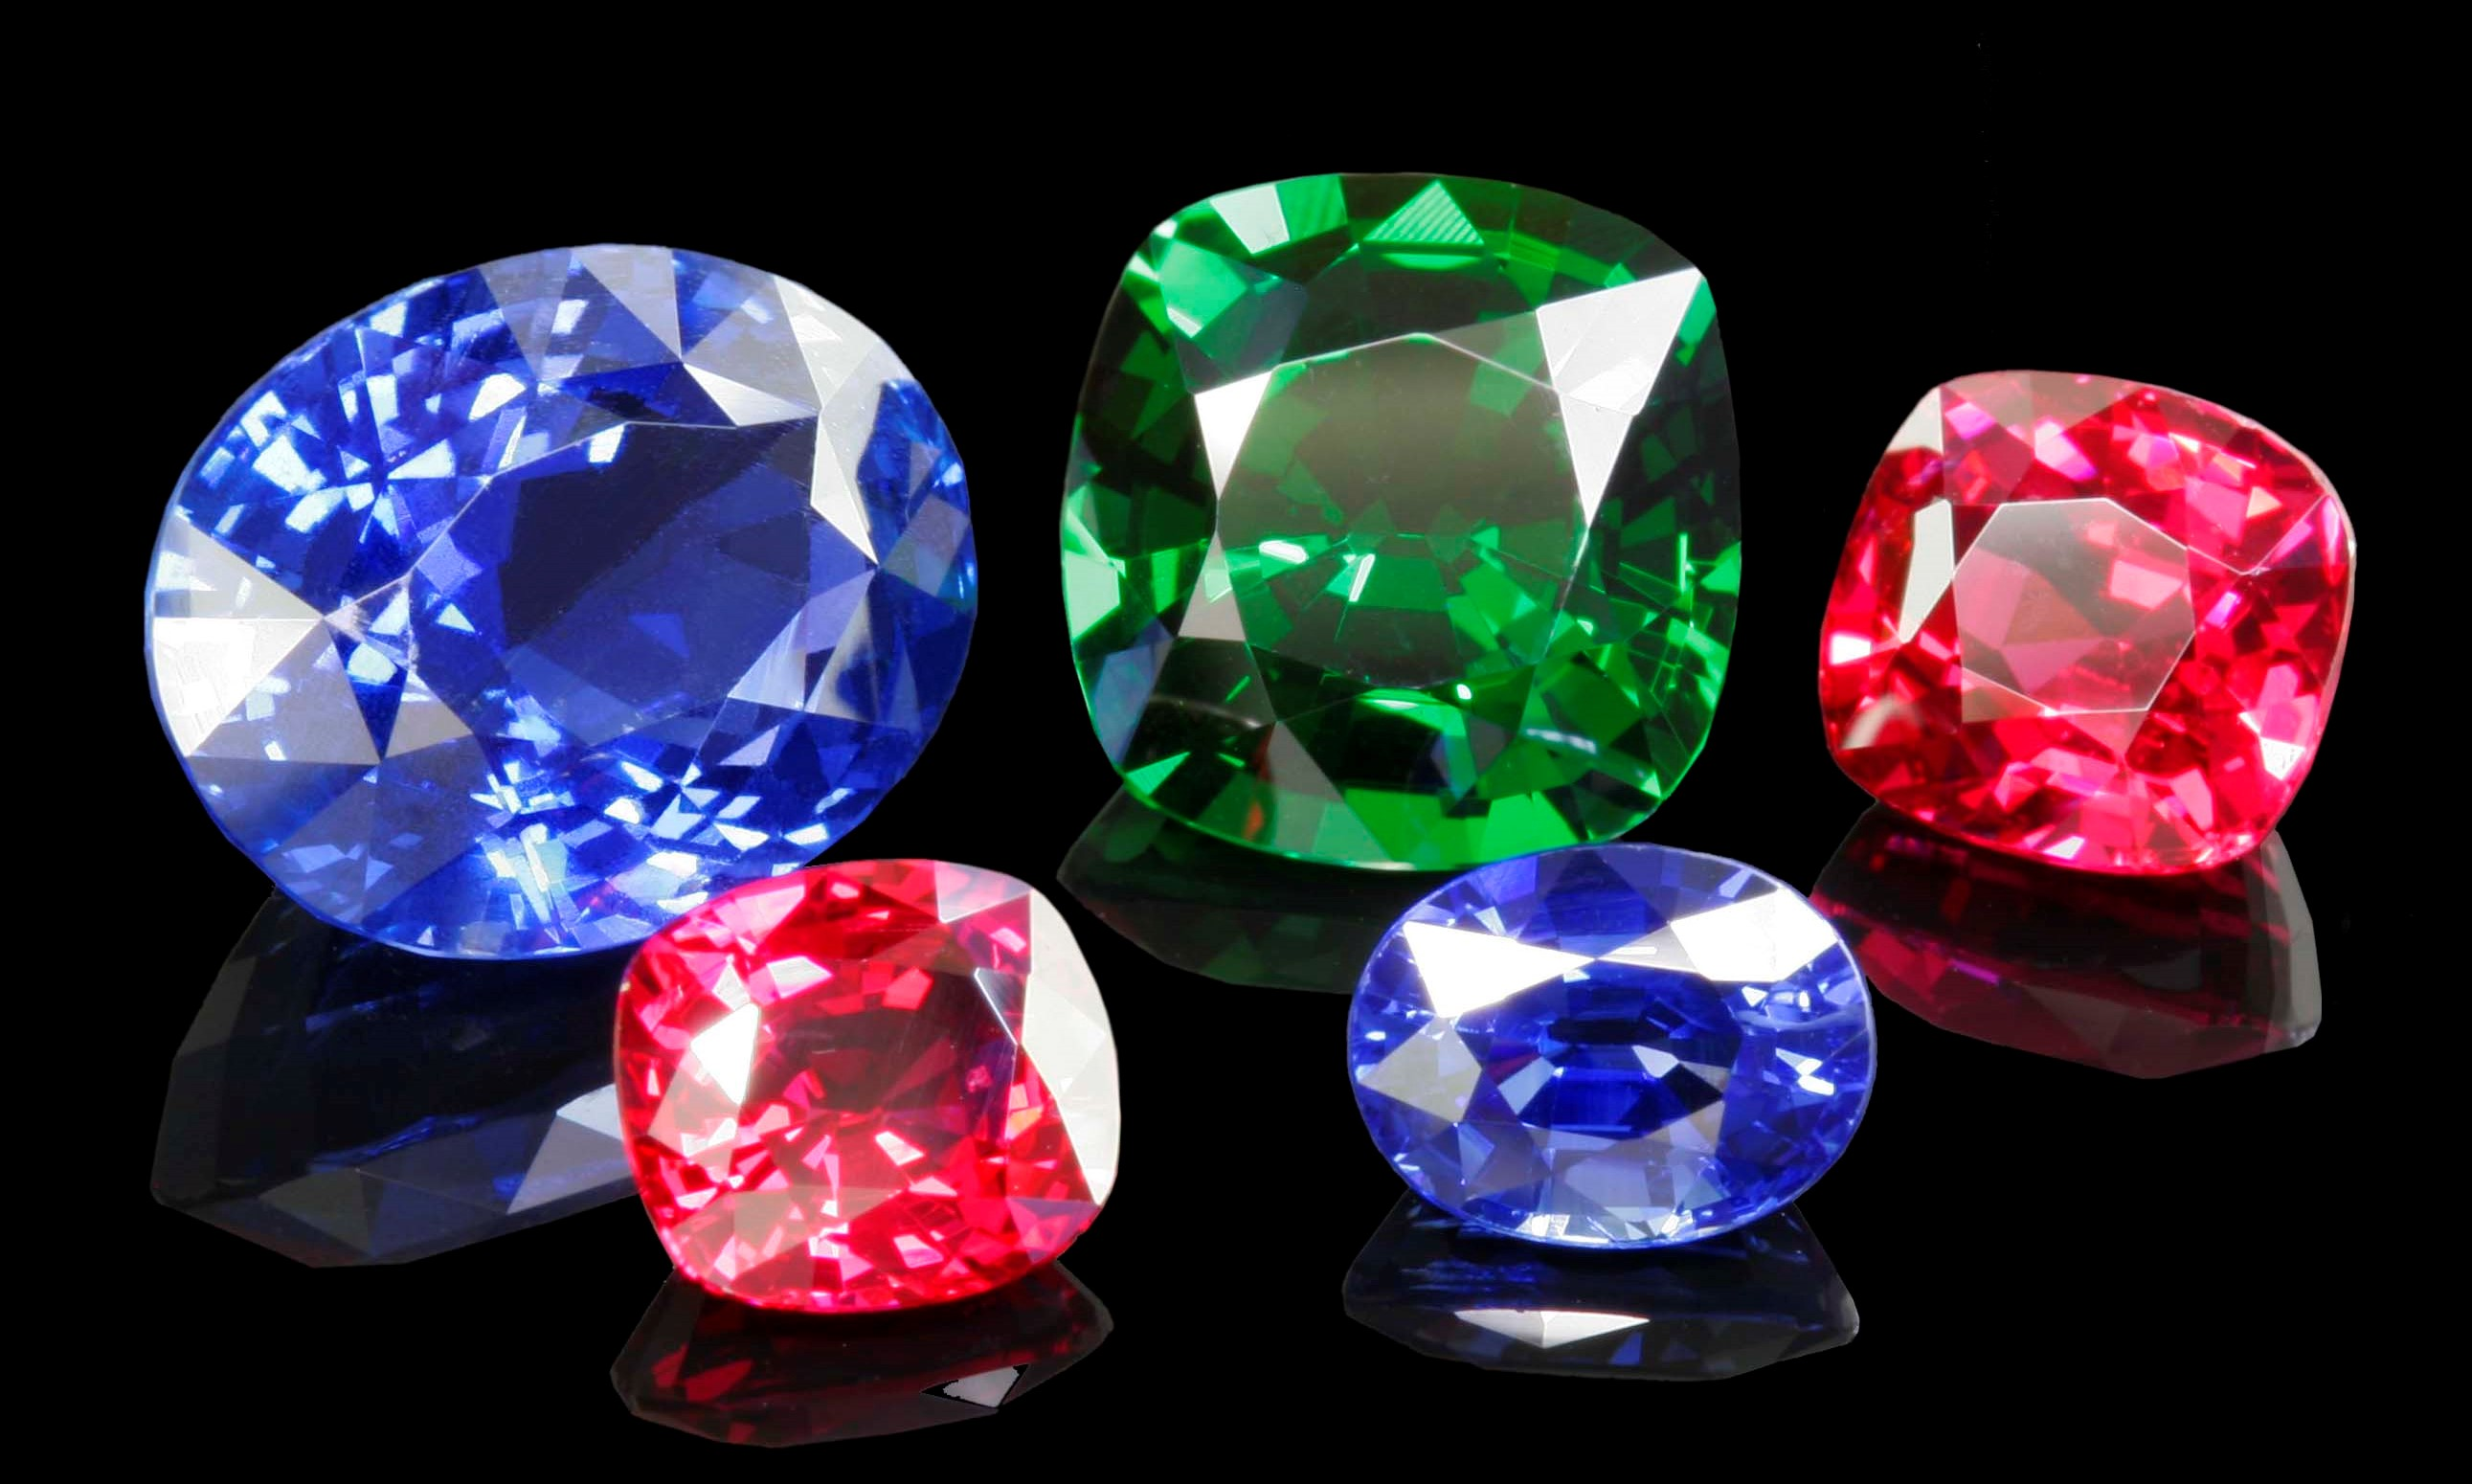 de inventory london tumbled s gemstone a sapphire exchange blogs diamond from gemstones purple coloured emerald